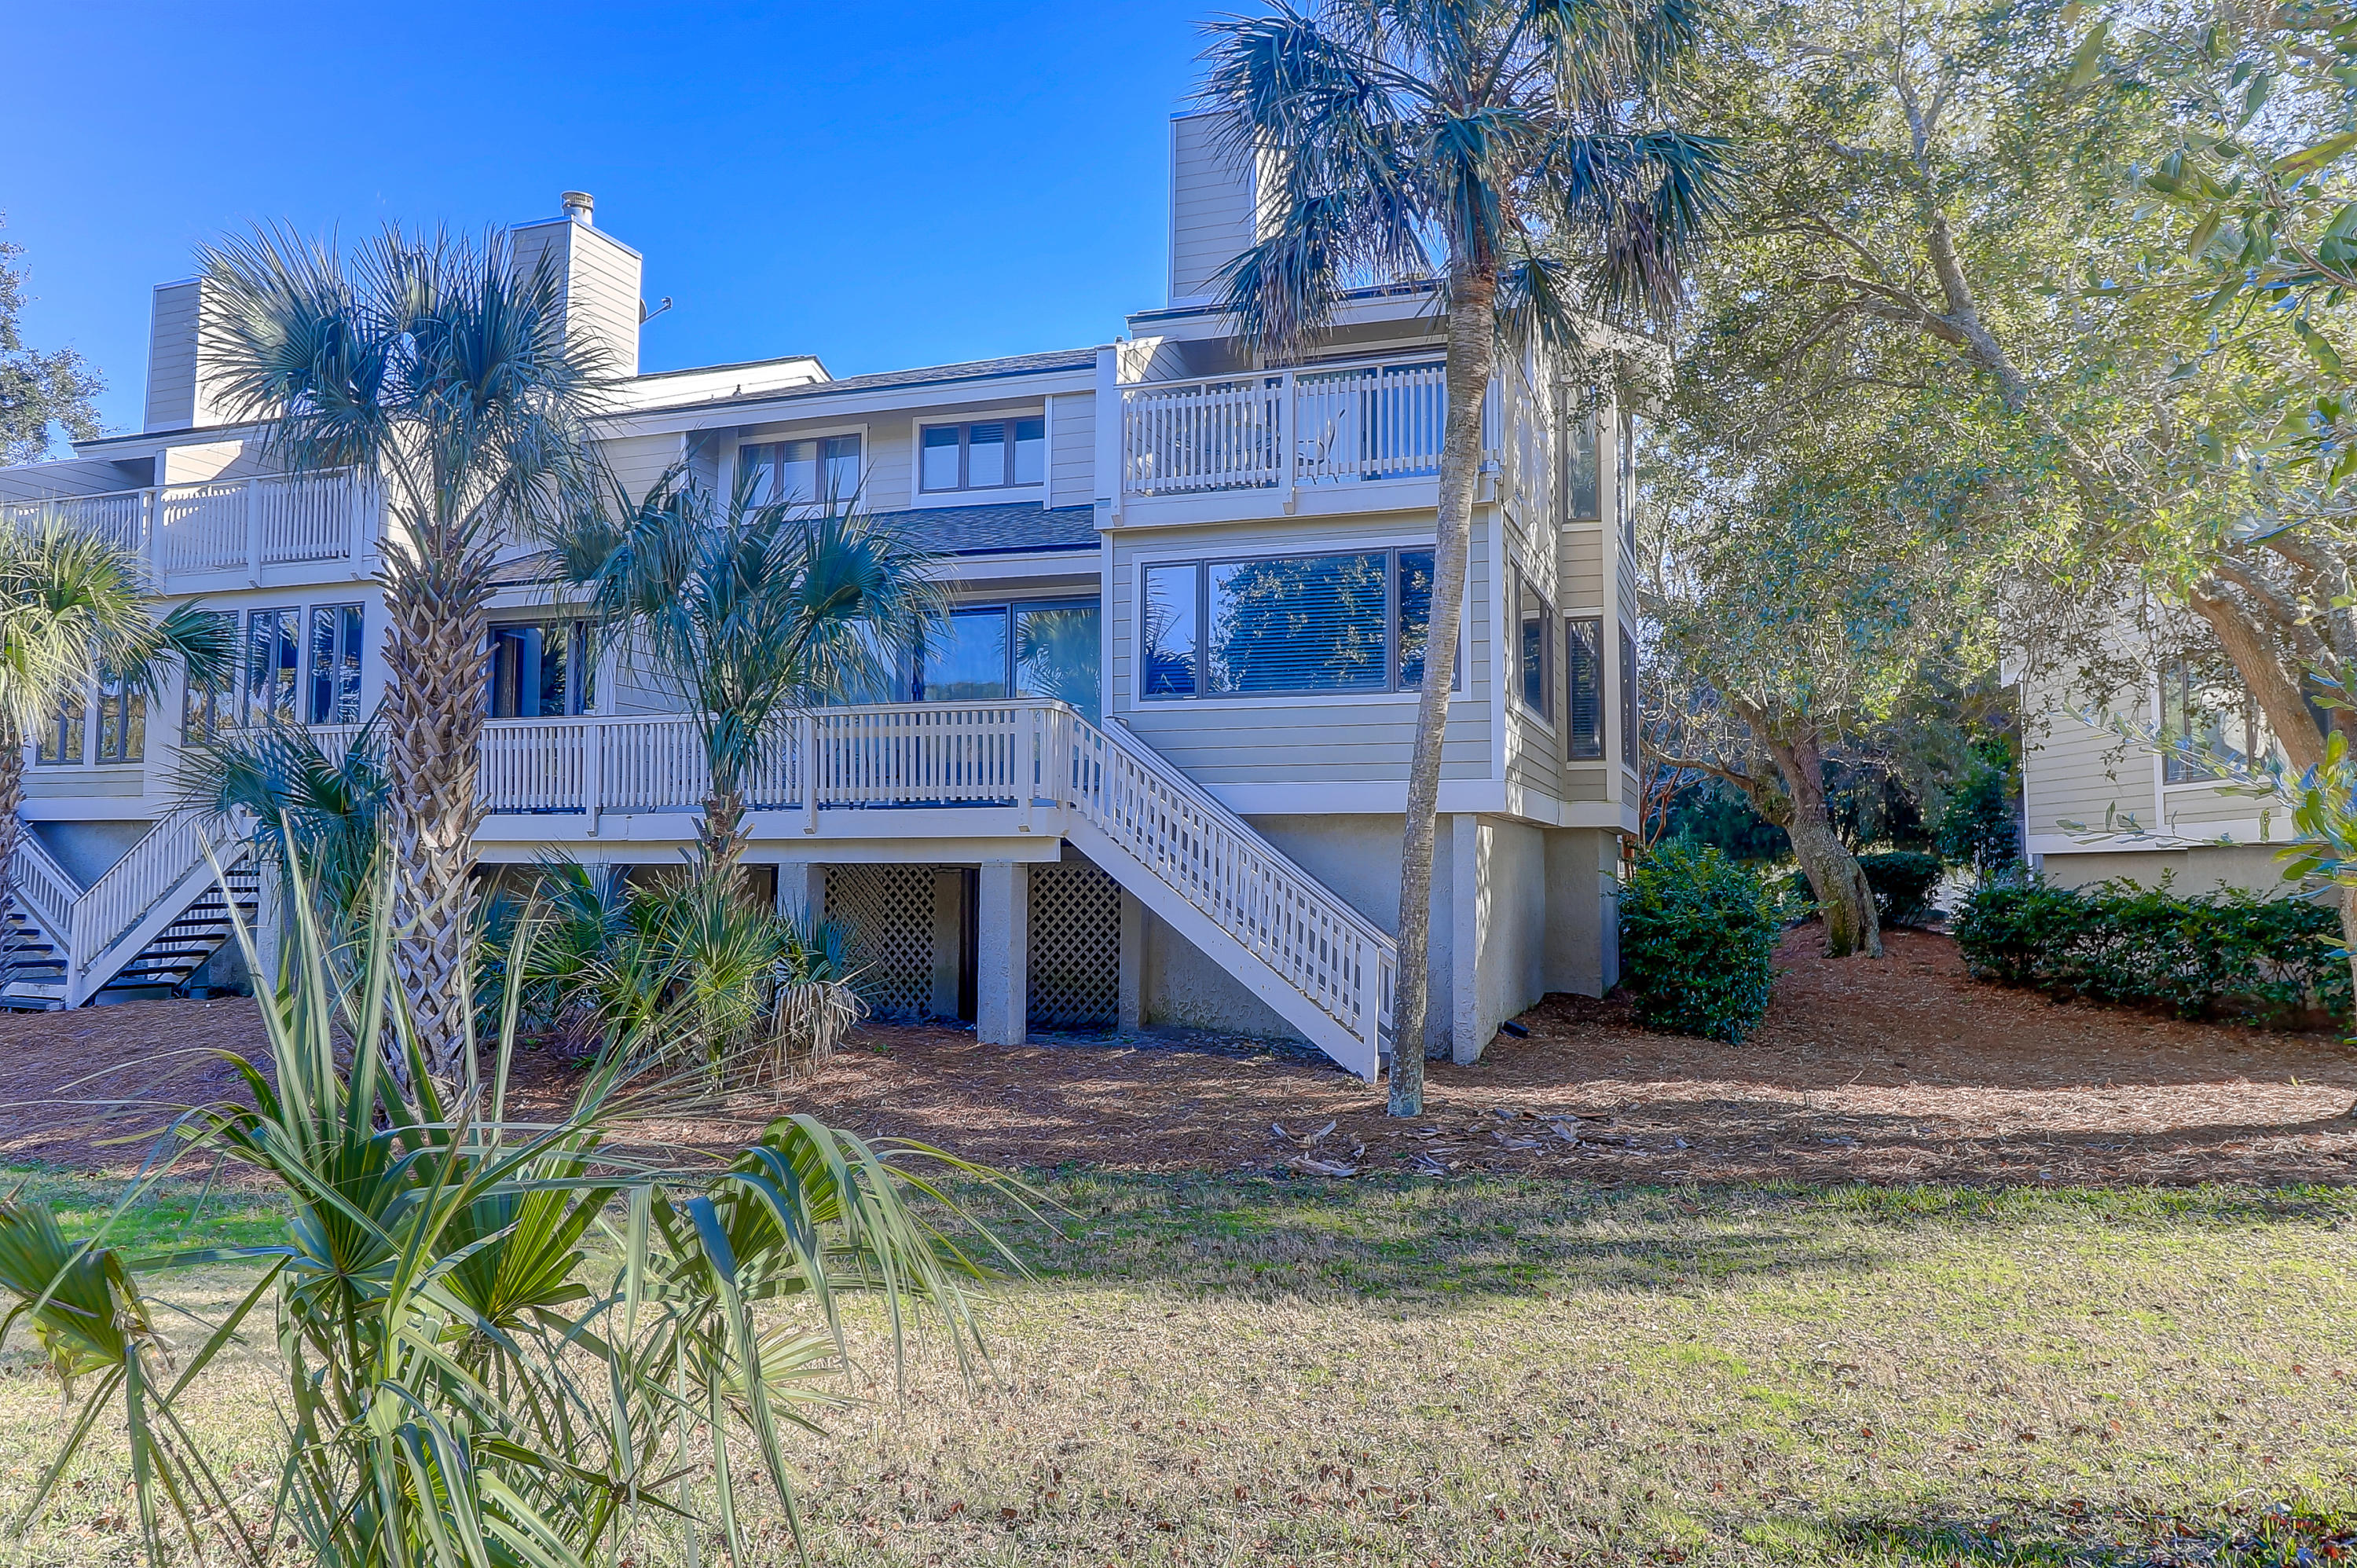 Wild Dunes Homes For Sale - 40 Fairway Dunes, Isle of Palms, SC - 21